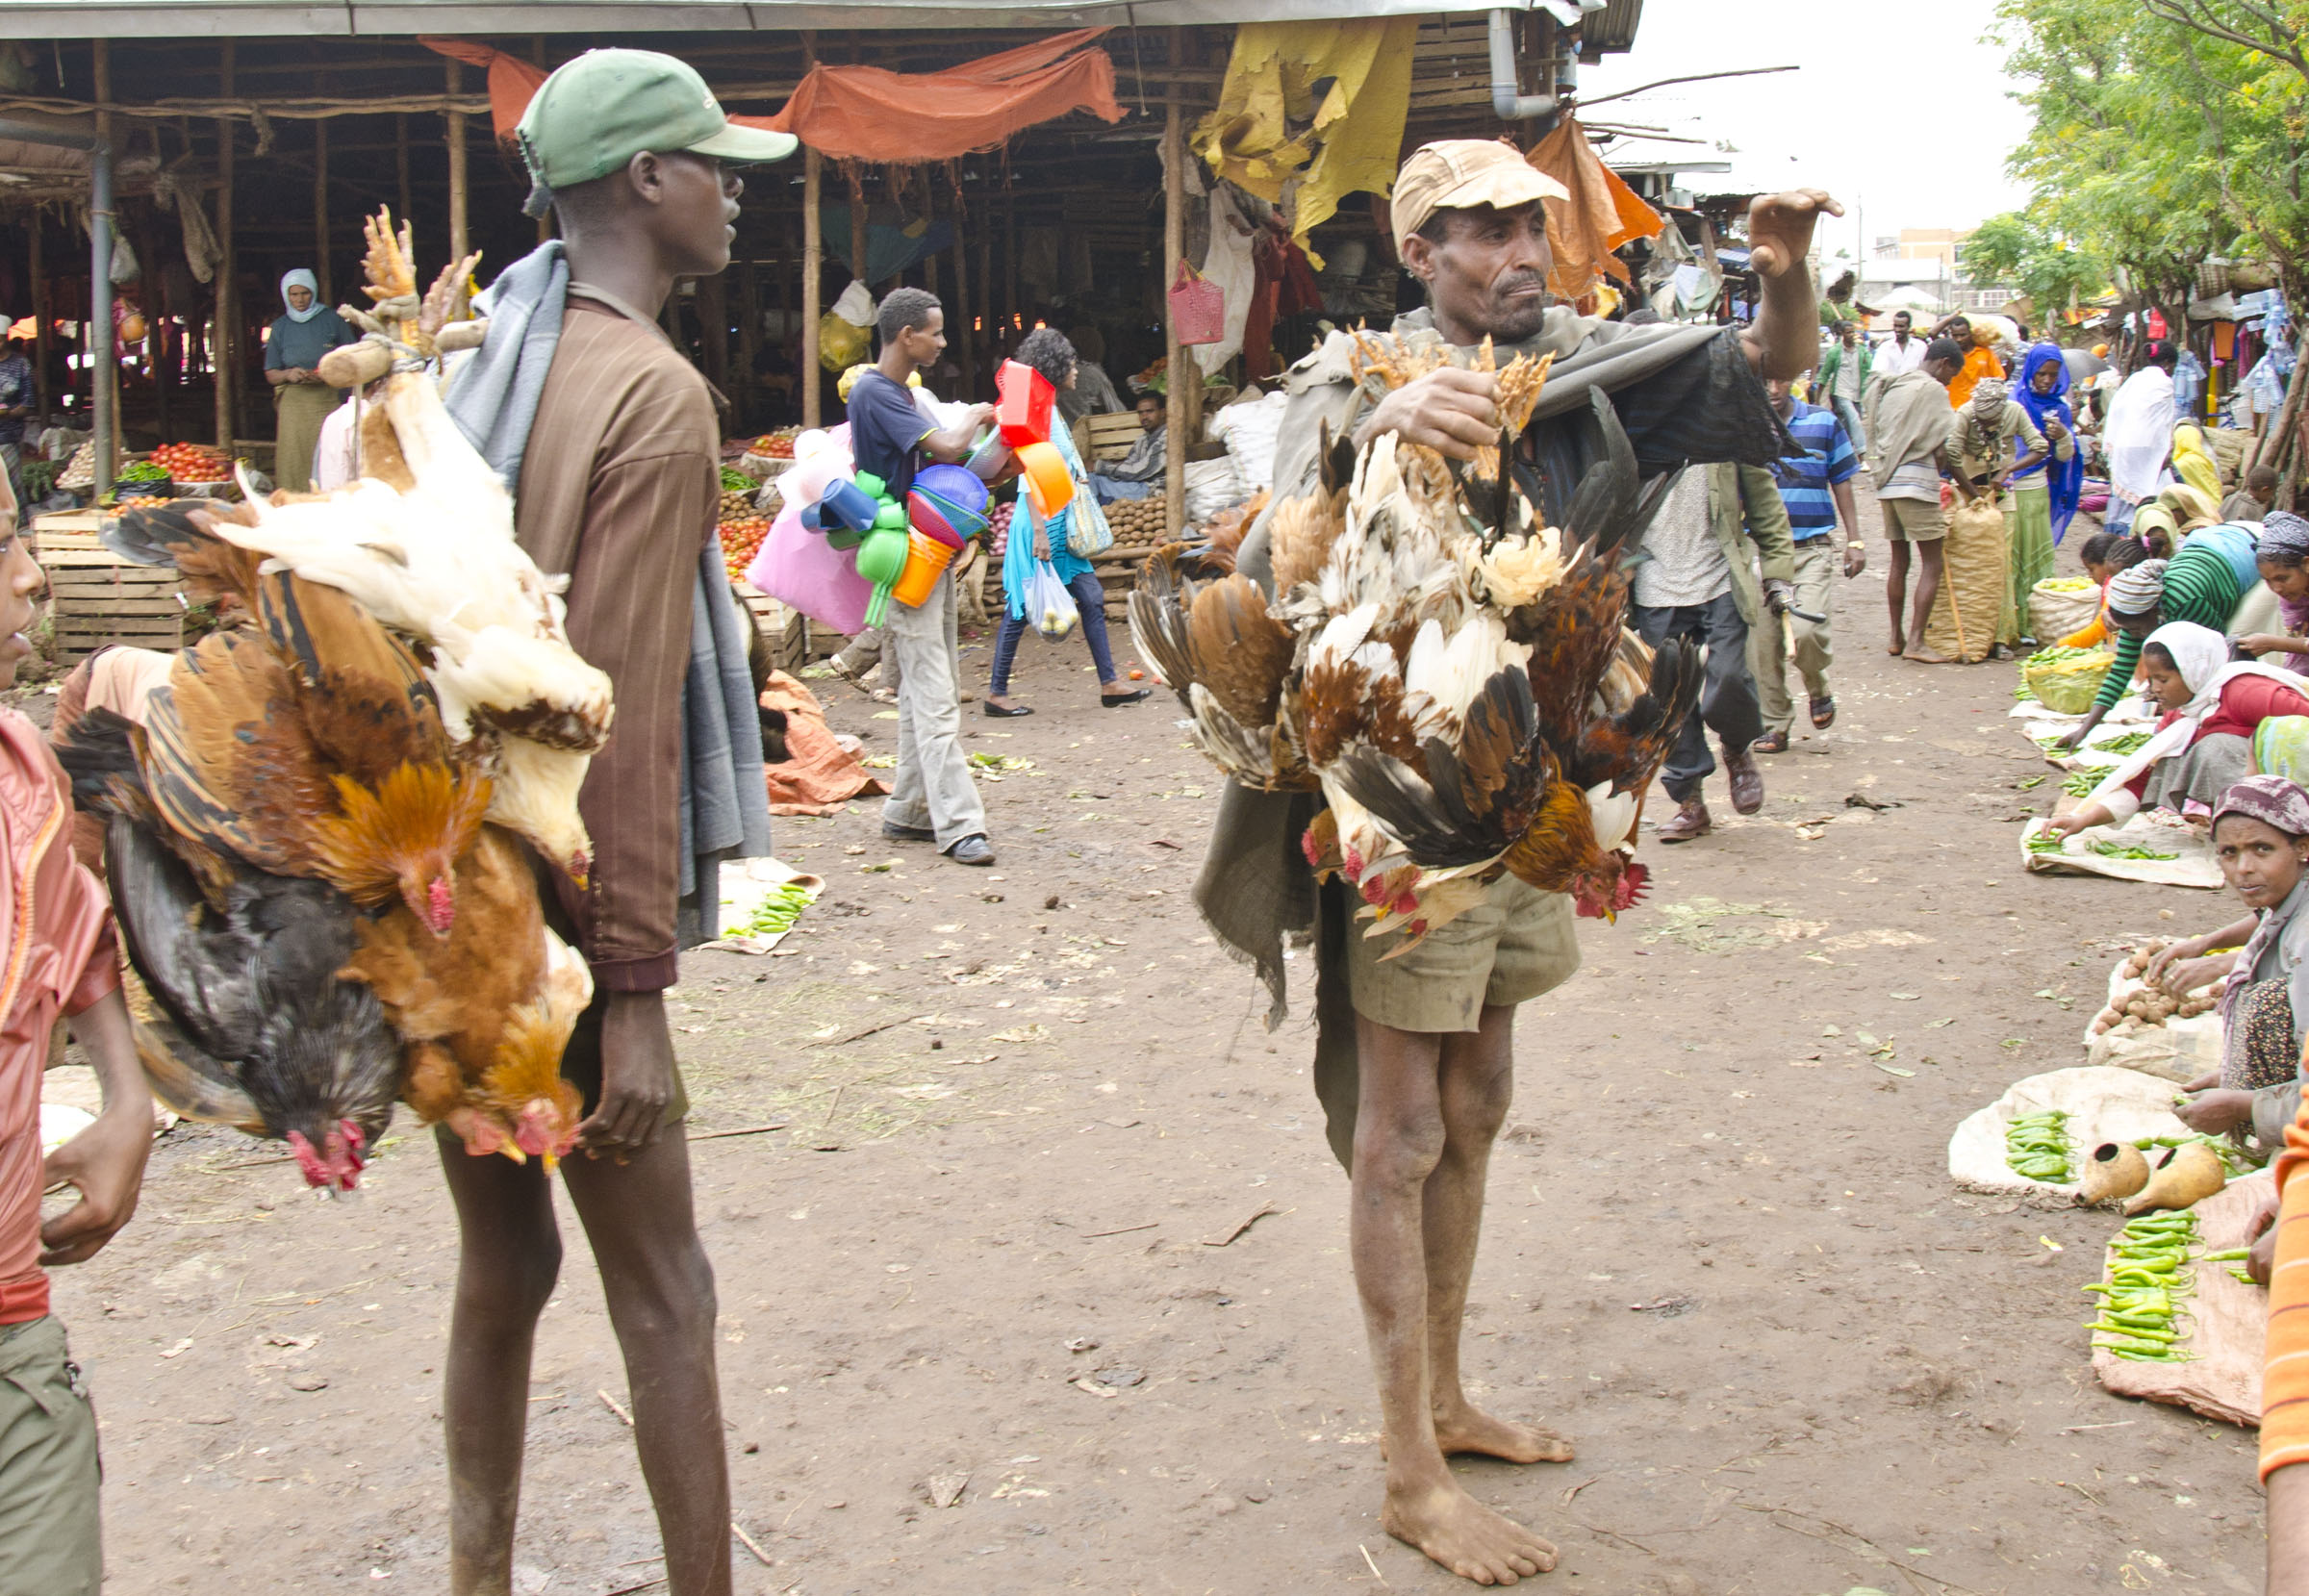 Live hens on pole in market, Bahir Dar